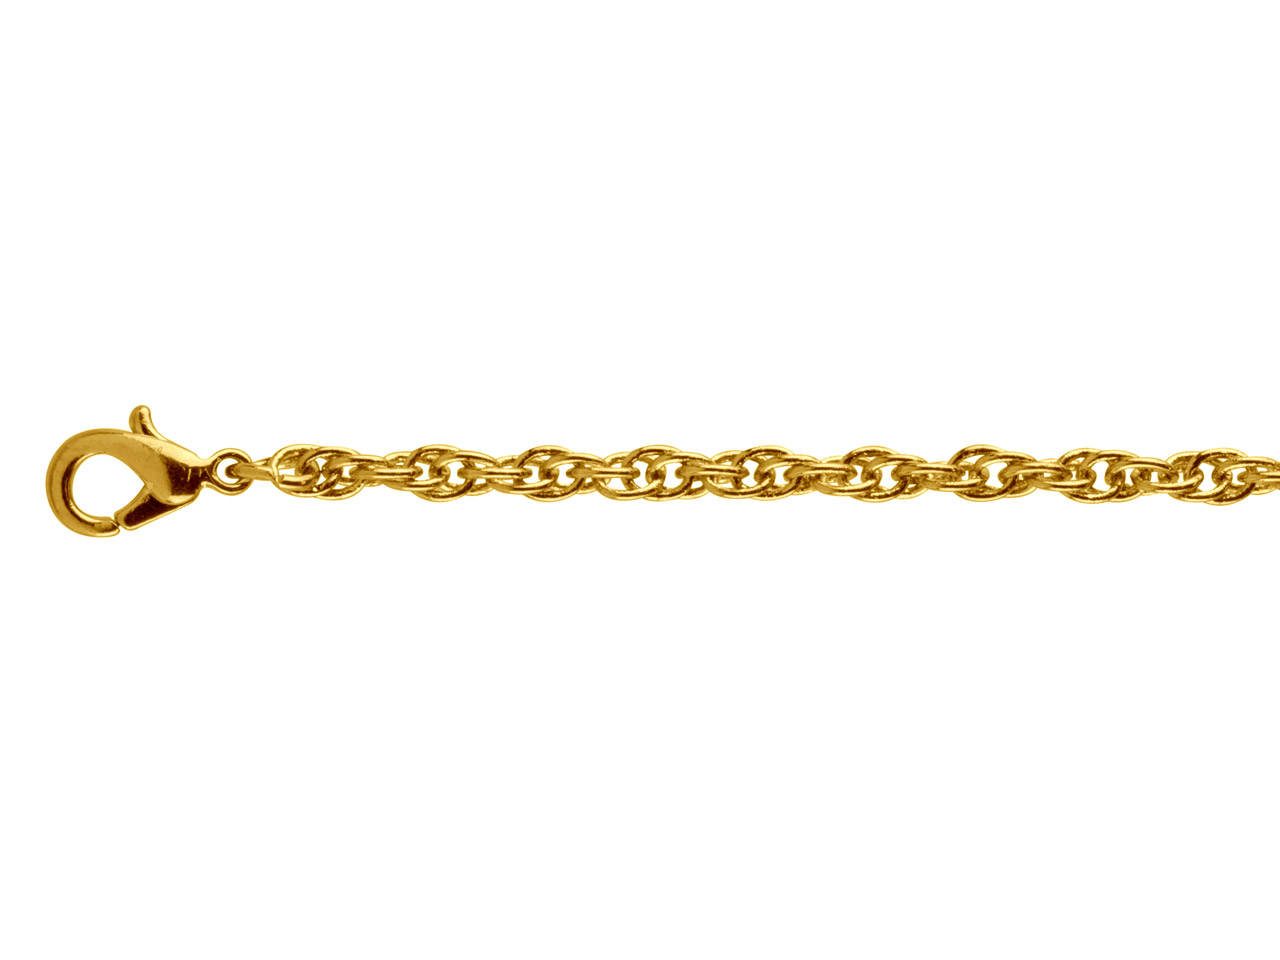 Gold Plated Rope 2.8mm 16